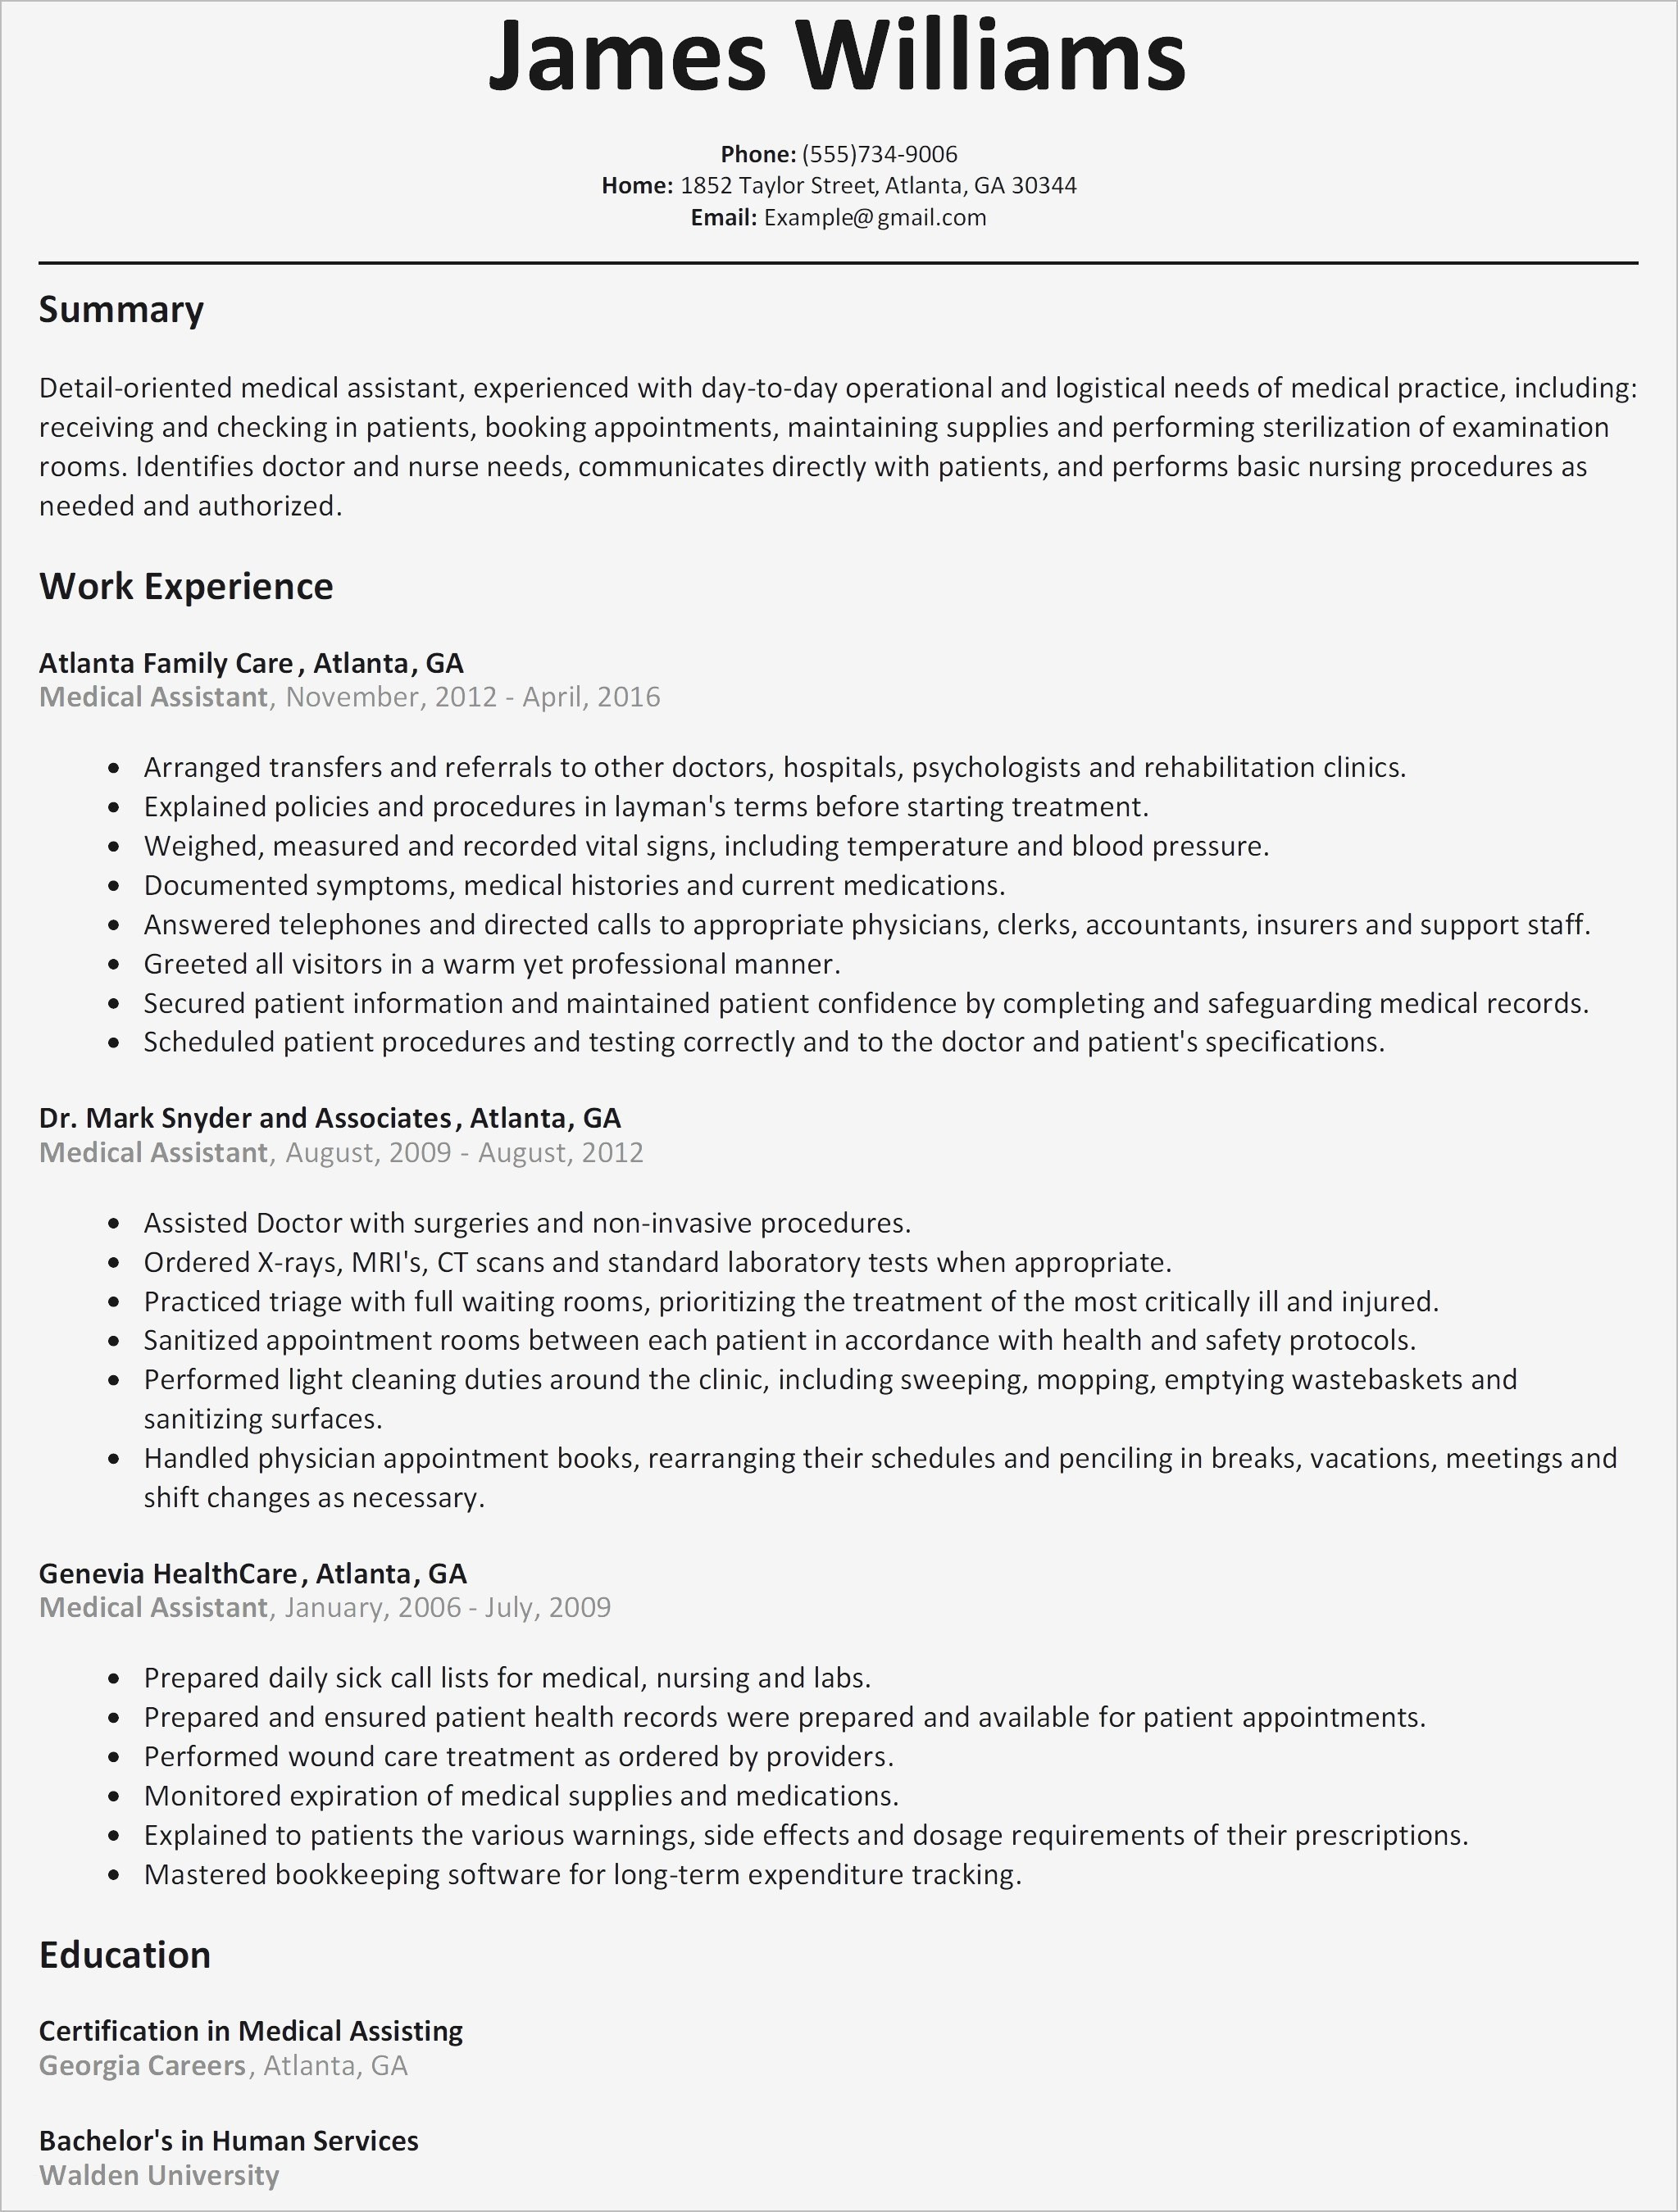 Free Resume Template Download - Inspirational Free Resumes Templates to Download